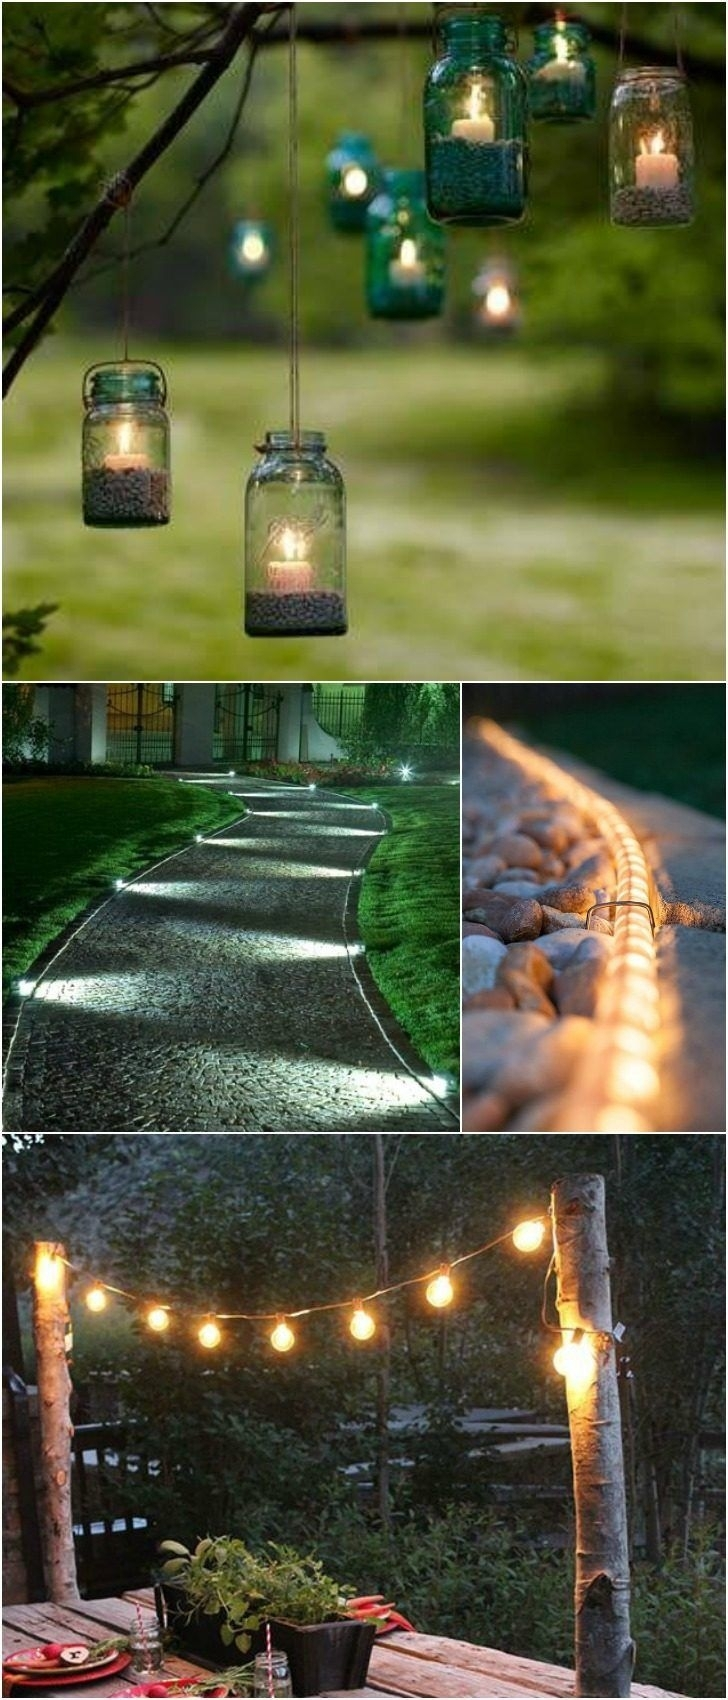 10 Outdoor Lighting Ideas For Your Garden Landscape (View 15 of 15)